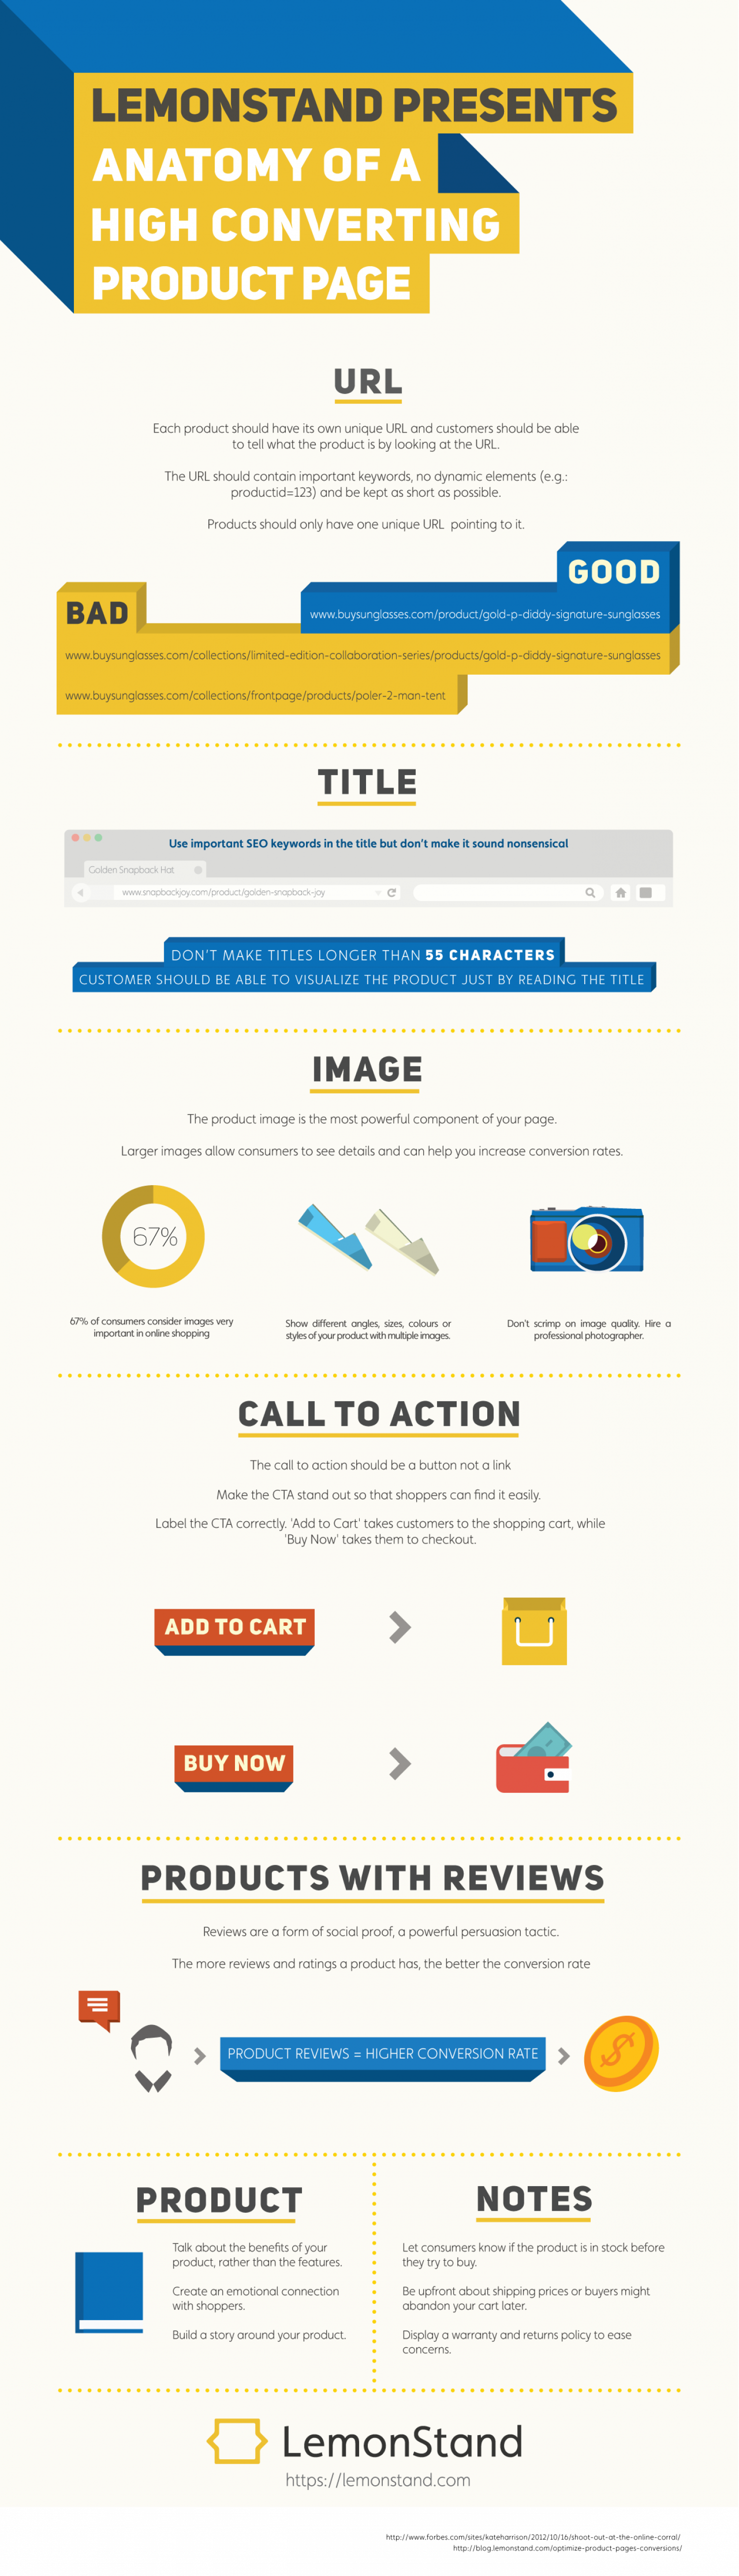 The Anatomy Of A High Converting Product Page Visual